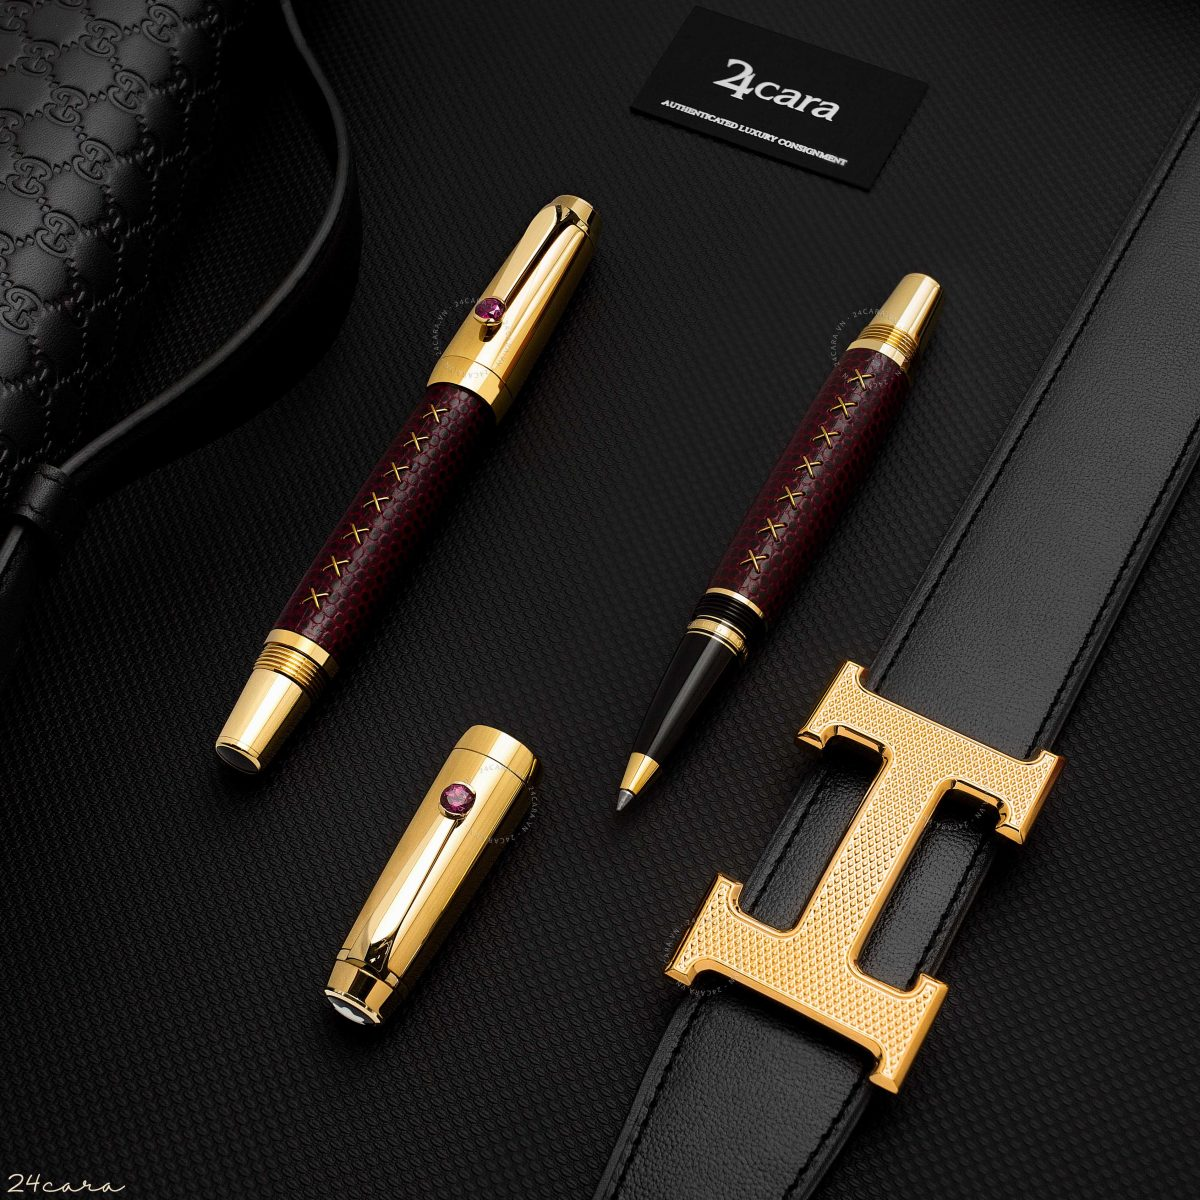 MONTBLANC BOHEME JEWELS RHODOLIT / RED LEATHER ROLLERBALL